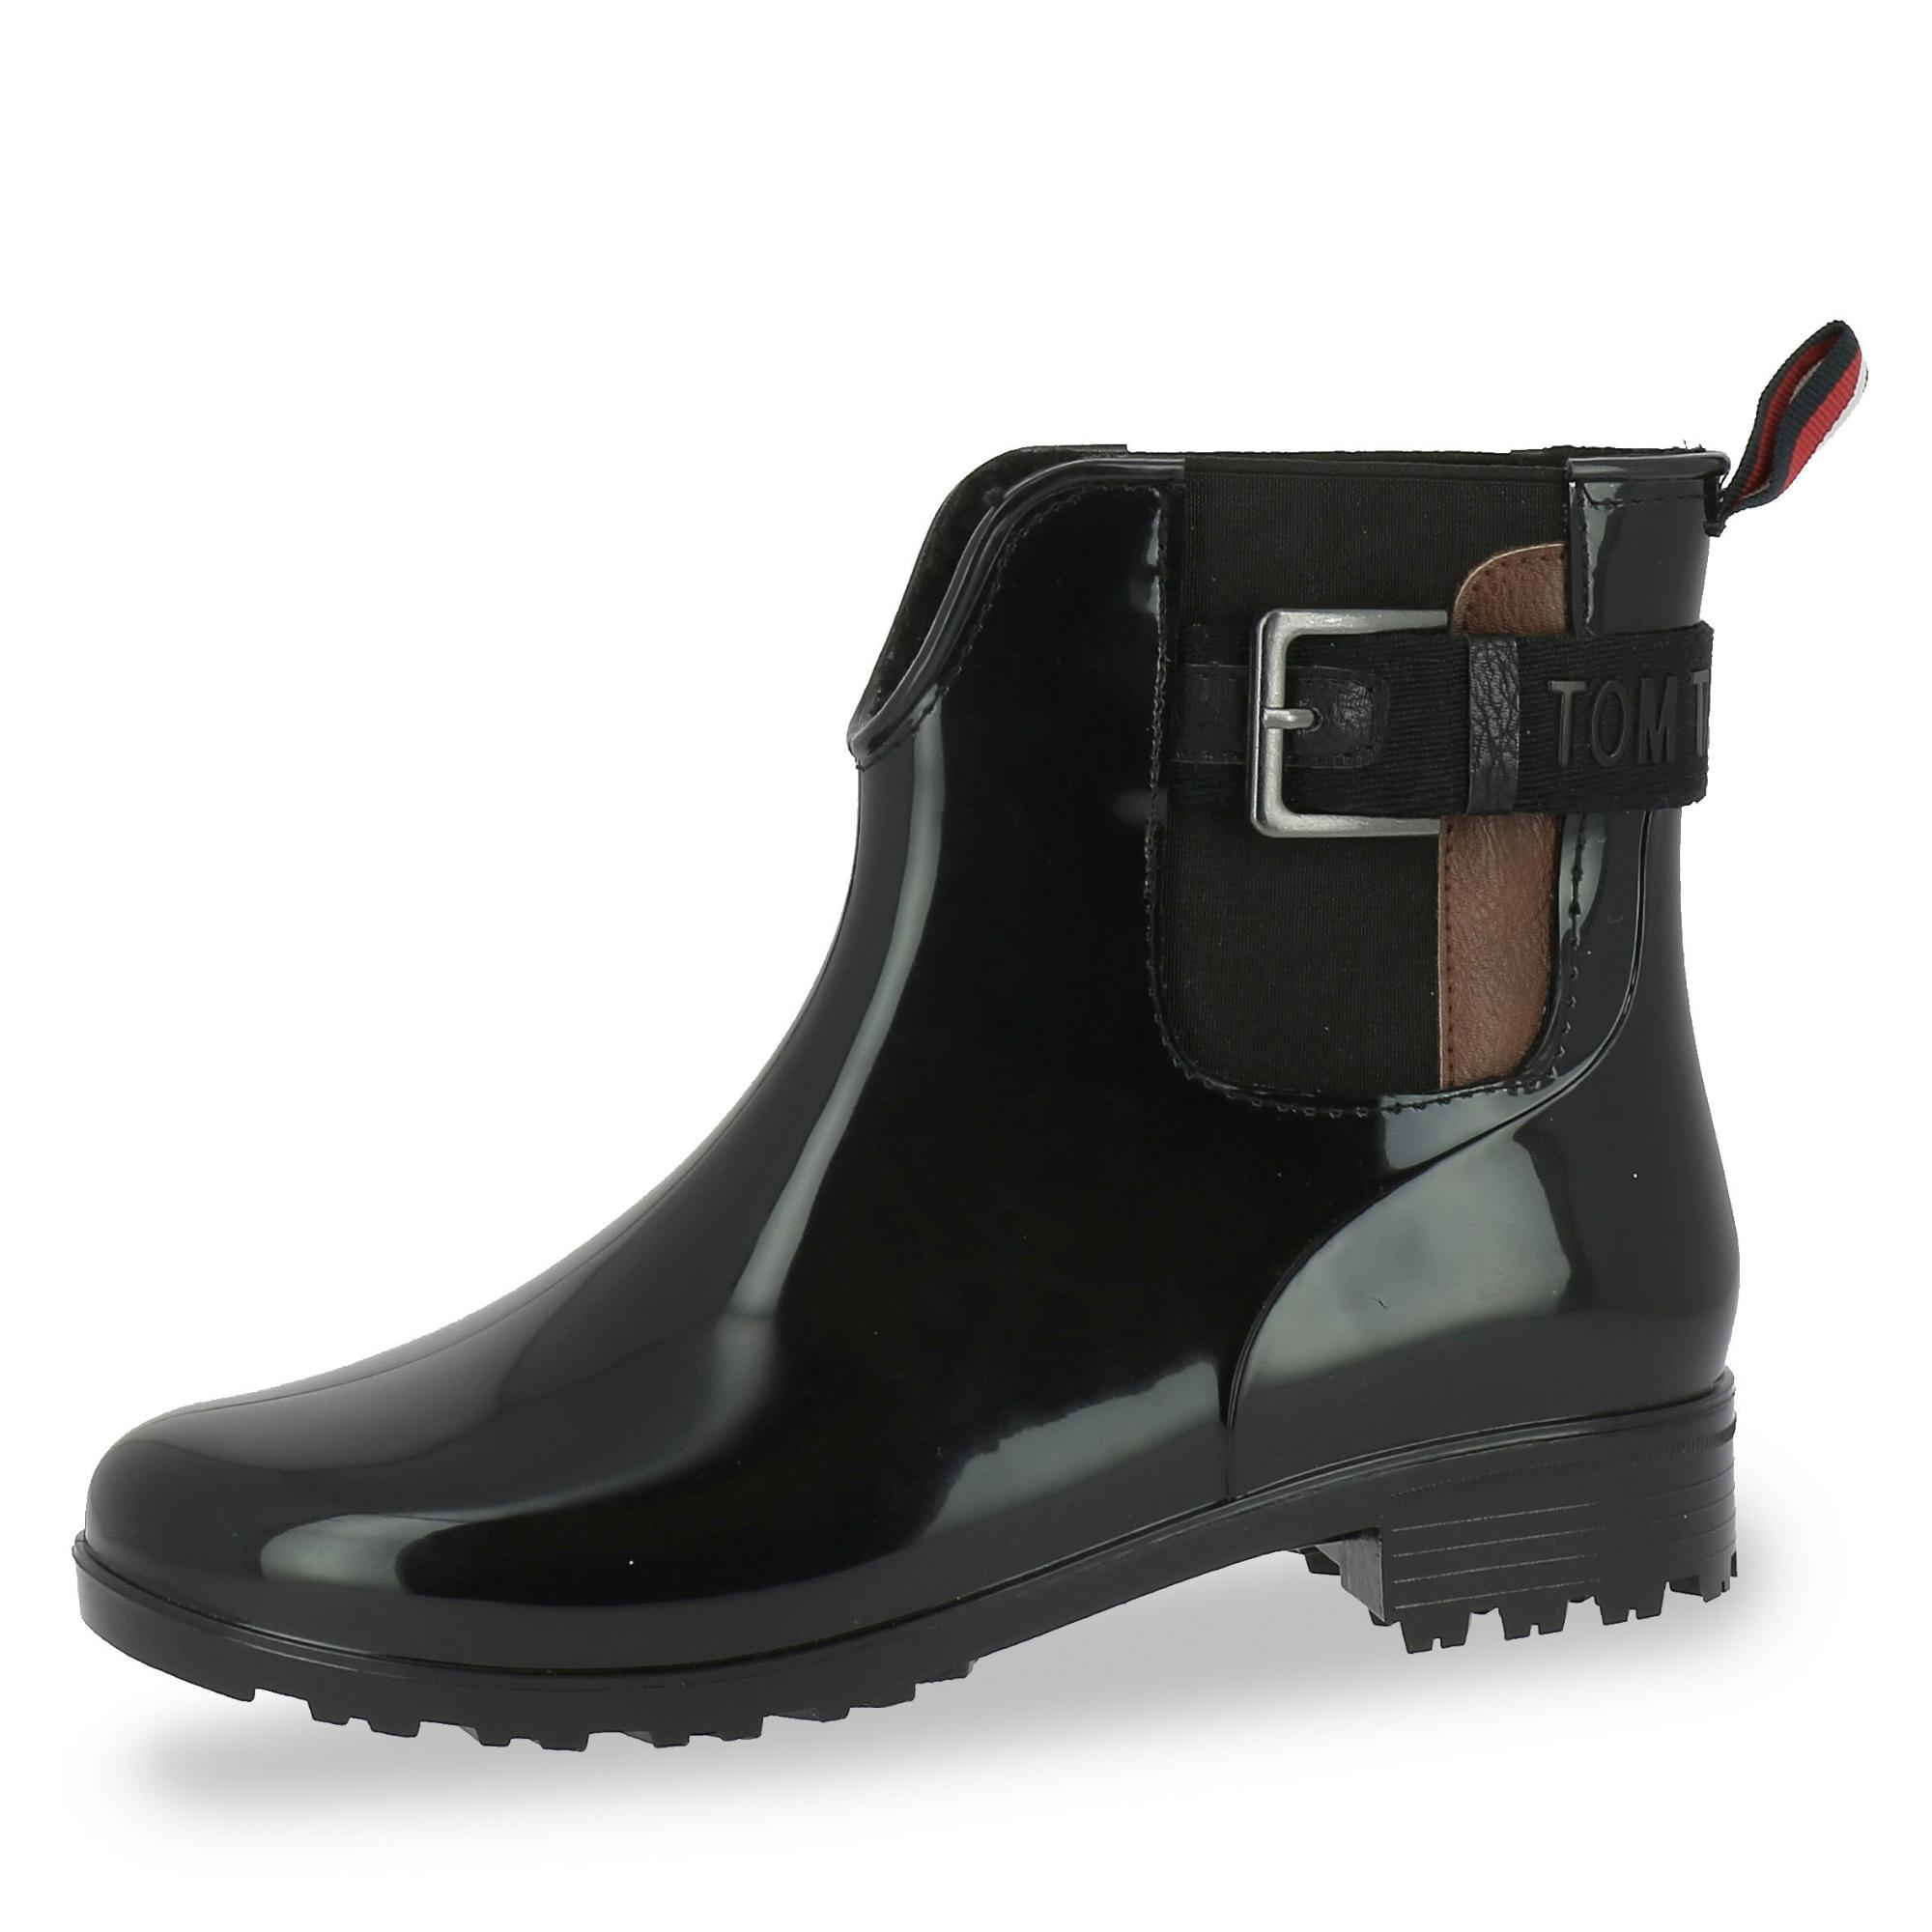 promo code 0833a 597ac Tom Tailor Chelsea Boots